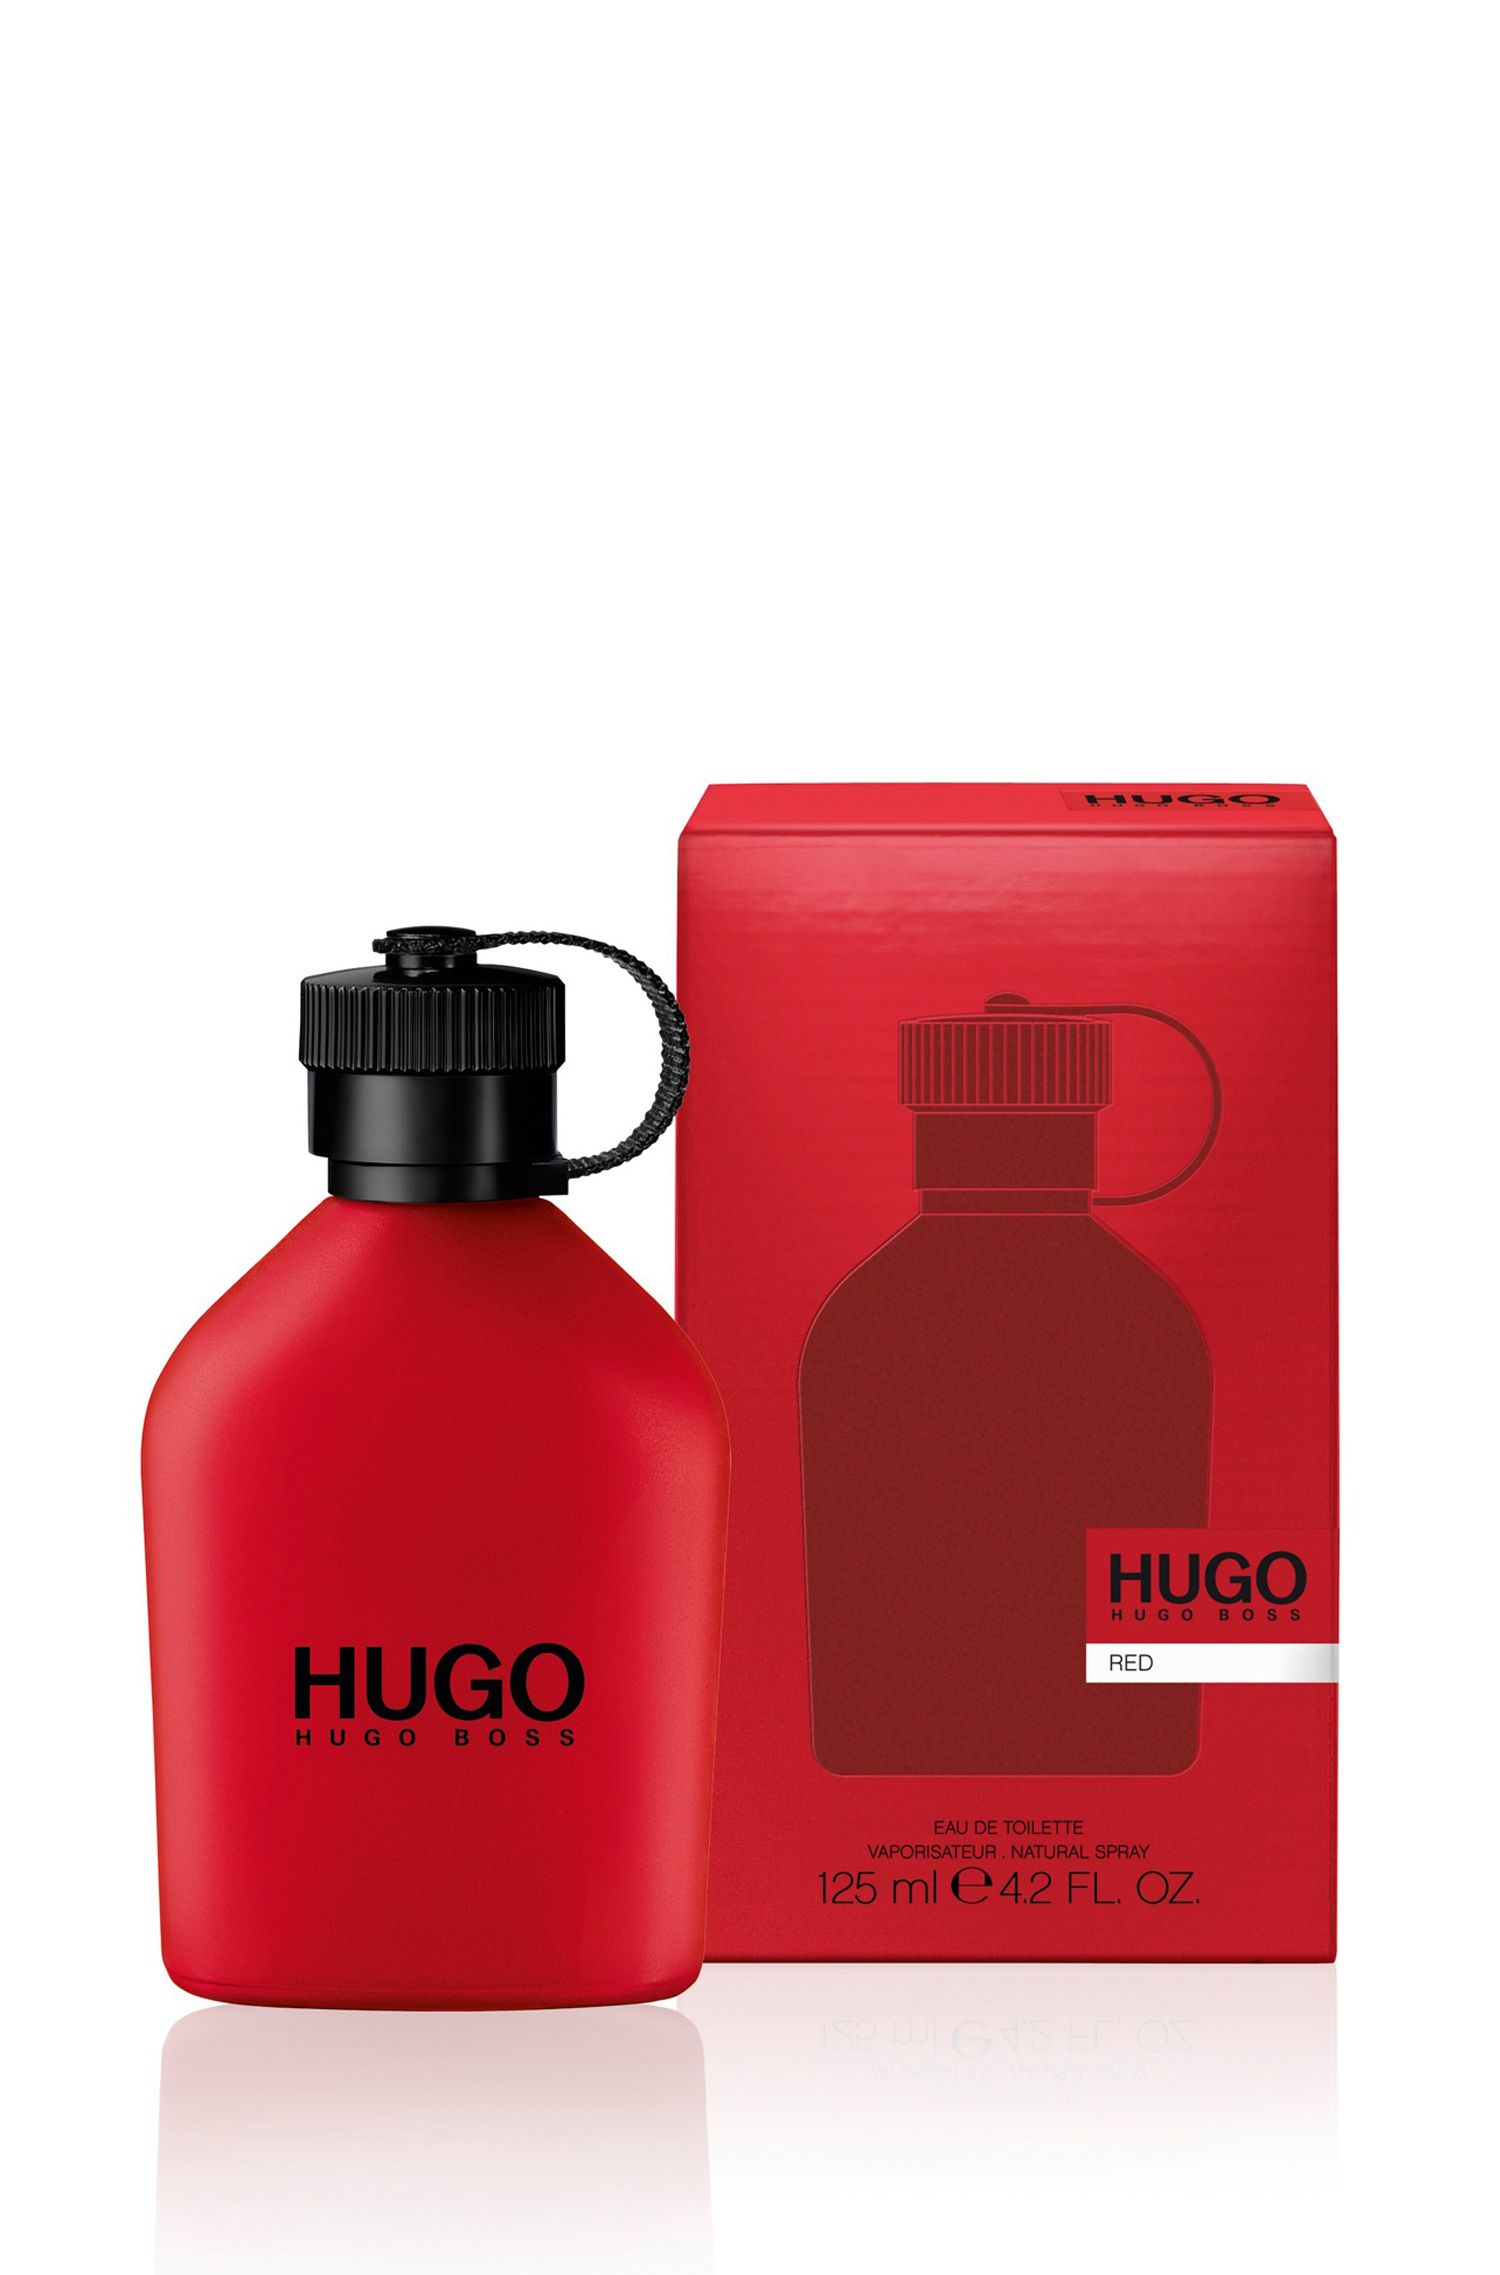 4.2 fl. oz. (125 mL) Eau de Toilette | HUGO Red